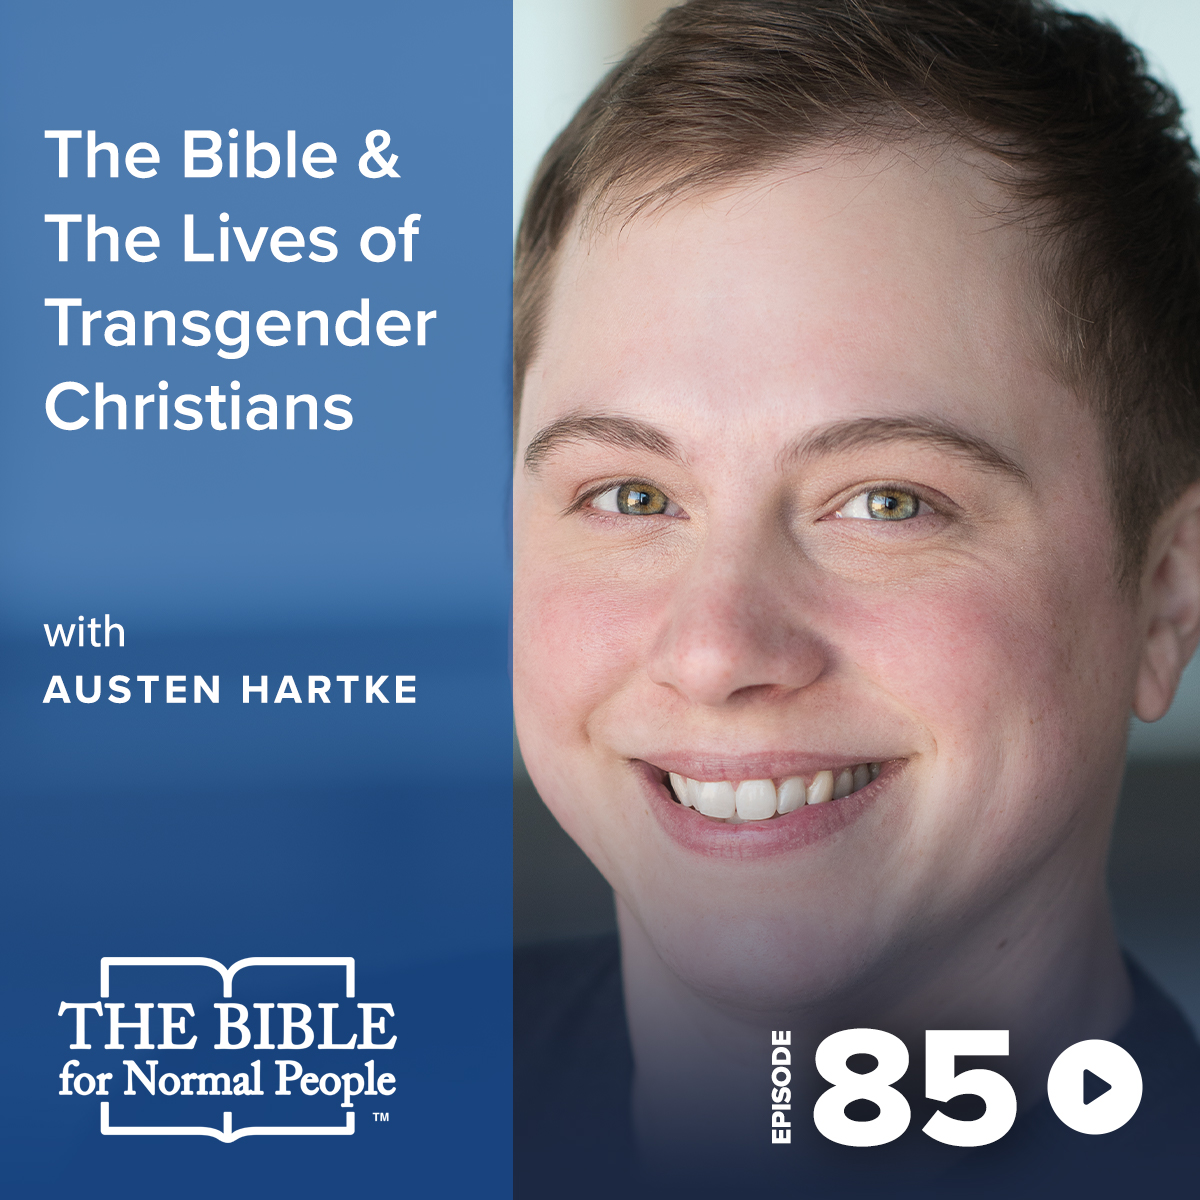 Episode 85: Austen Hartke - The Bible & The Lives of Transgender Christians